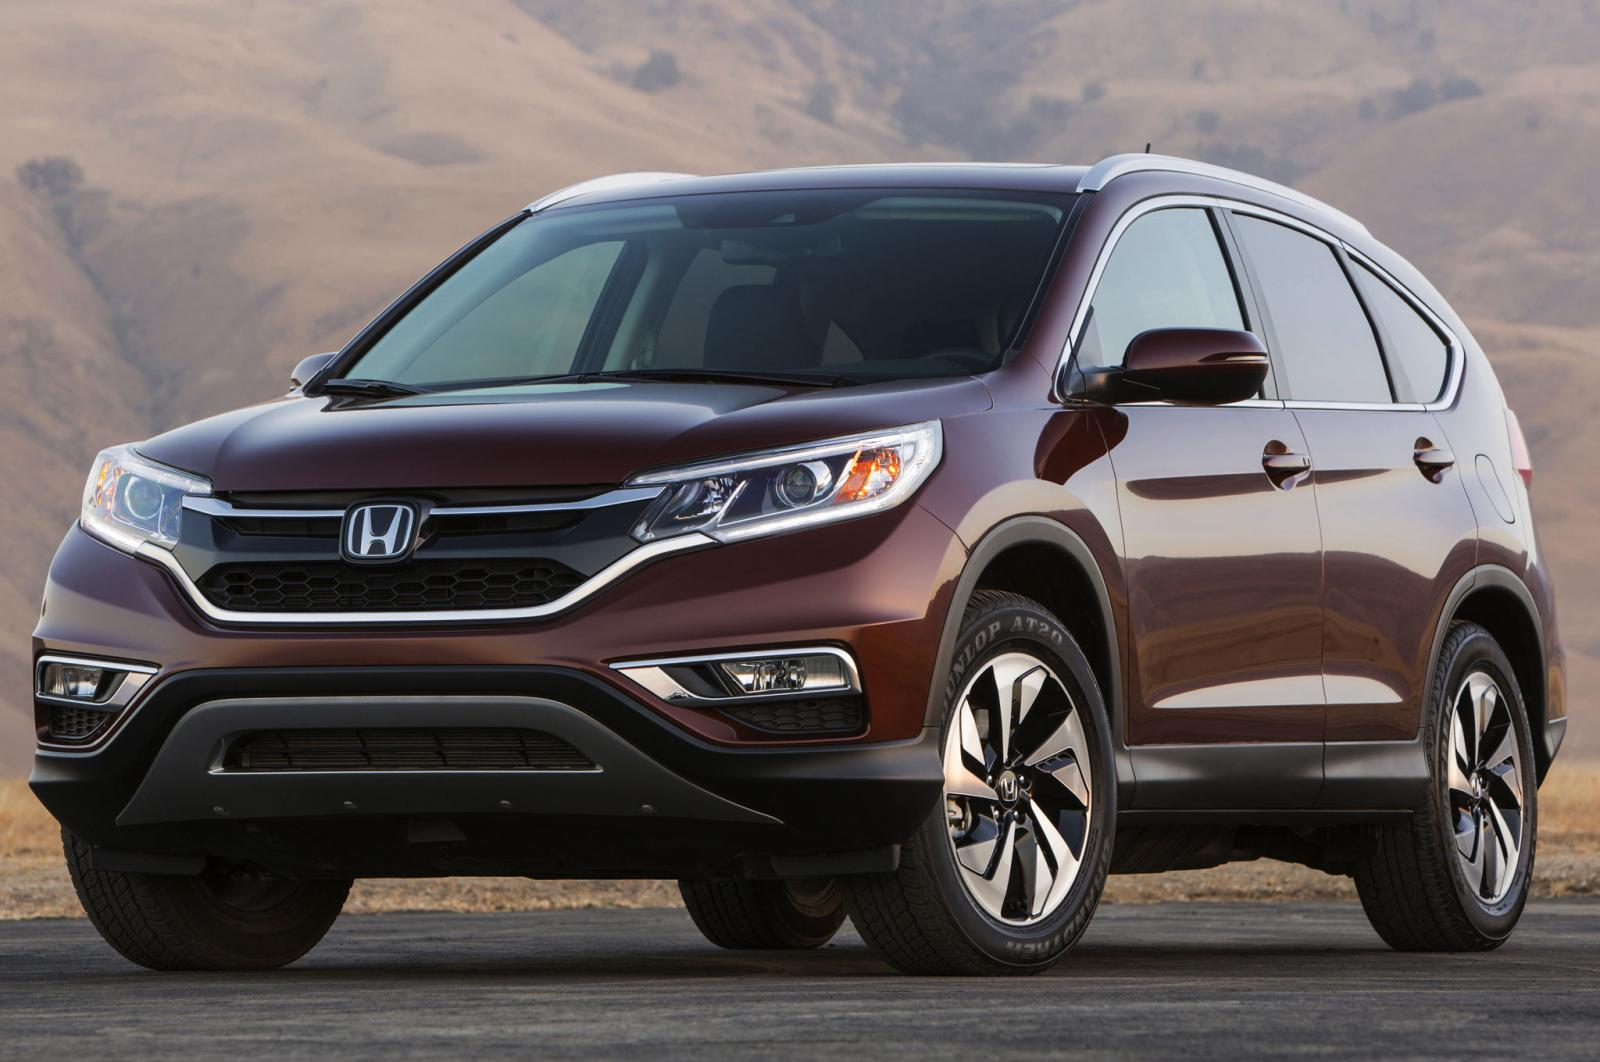 2015 honda cr v facelift leaked autoevolution. Black Bedroom Furniture Sets. Home Design Ideas